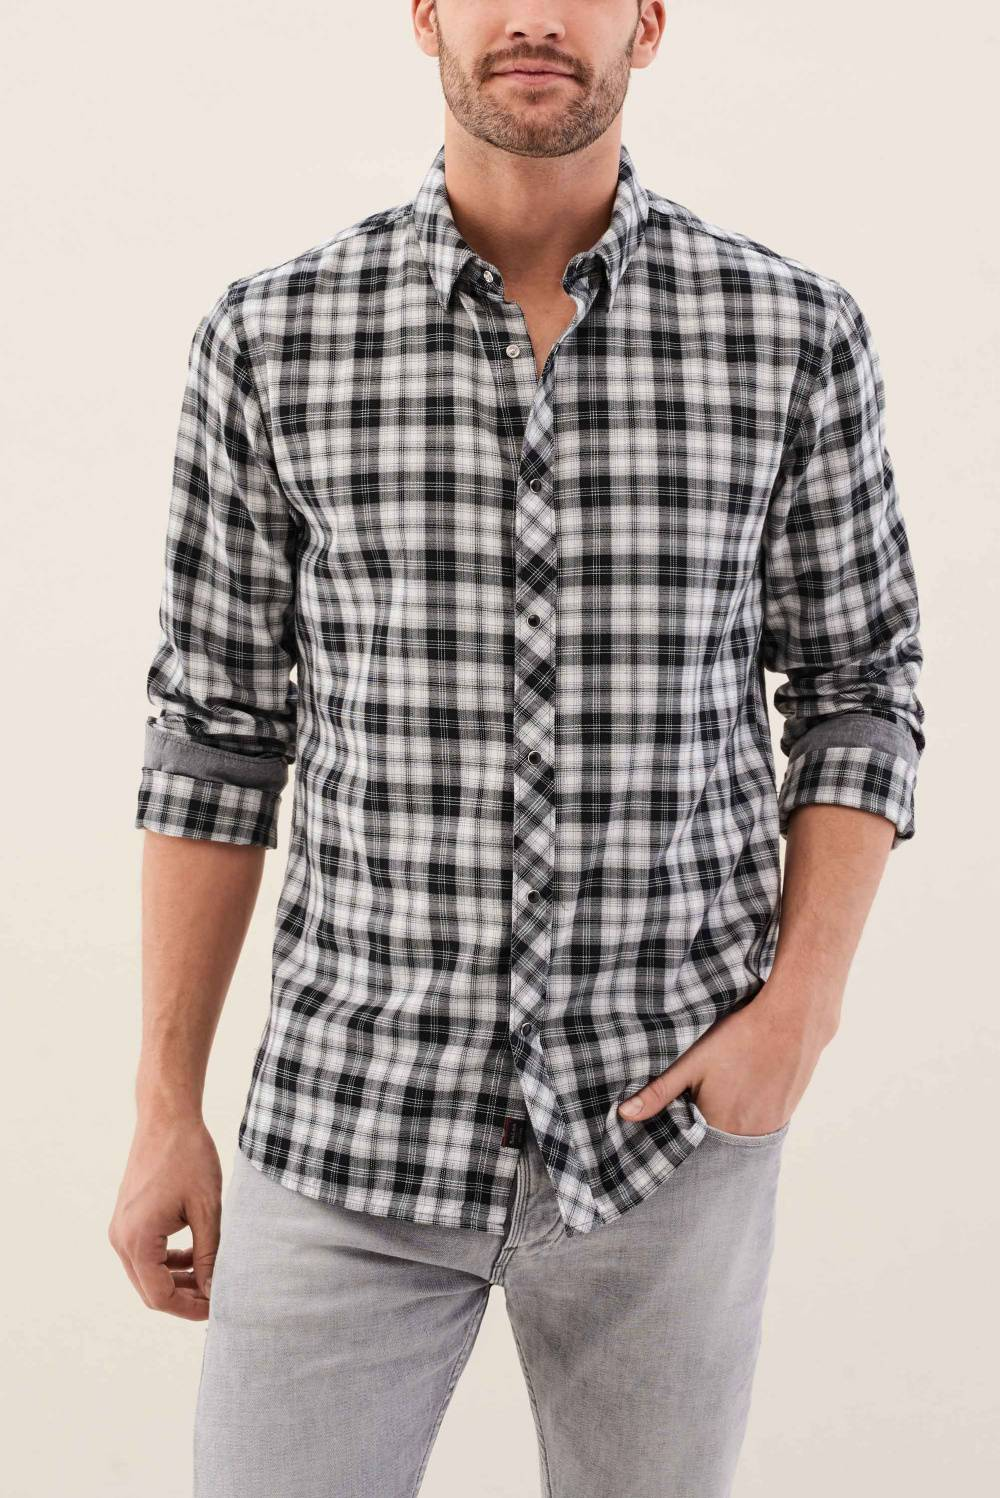 Chequered shirt - Salsa